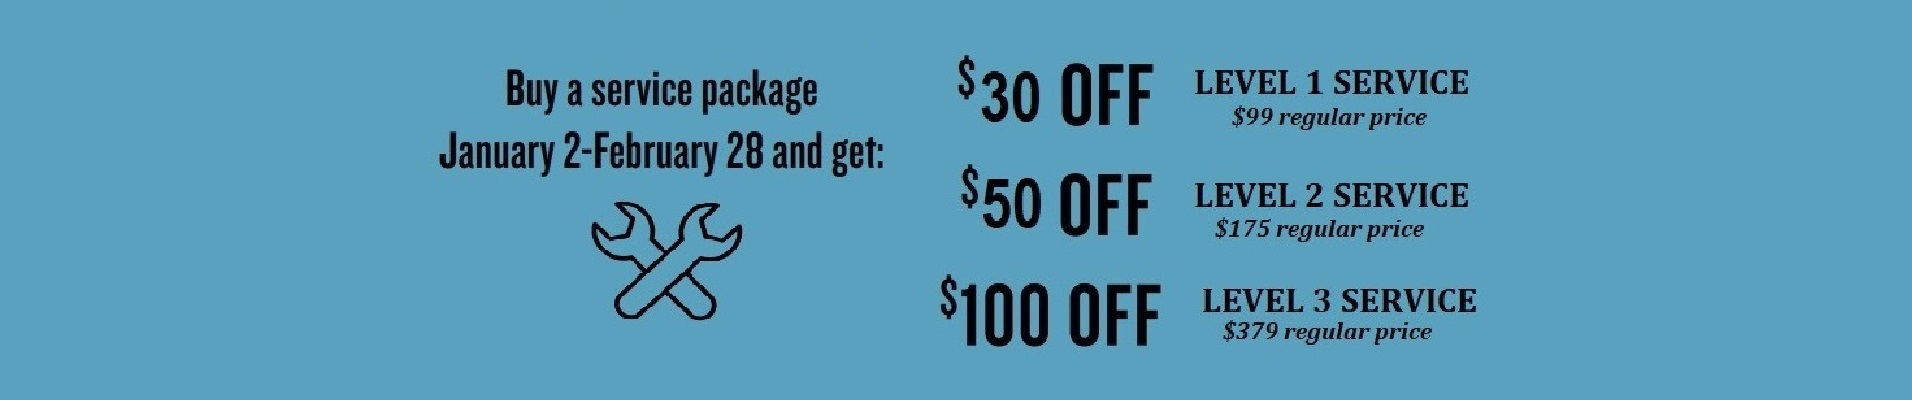 Buy a service package January 2-February 28 and get $30 off level 1 service, $50 off level 2 service or $100 off Level 3 service